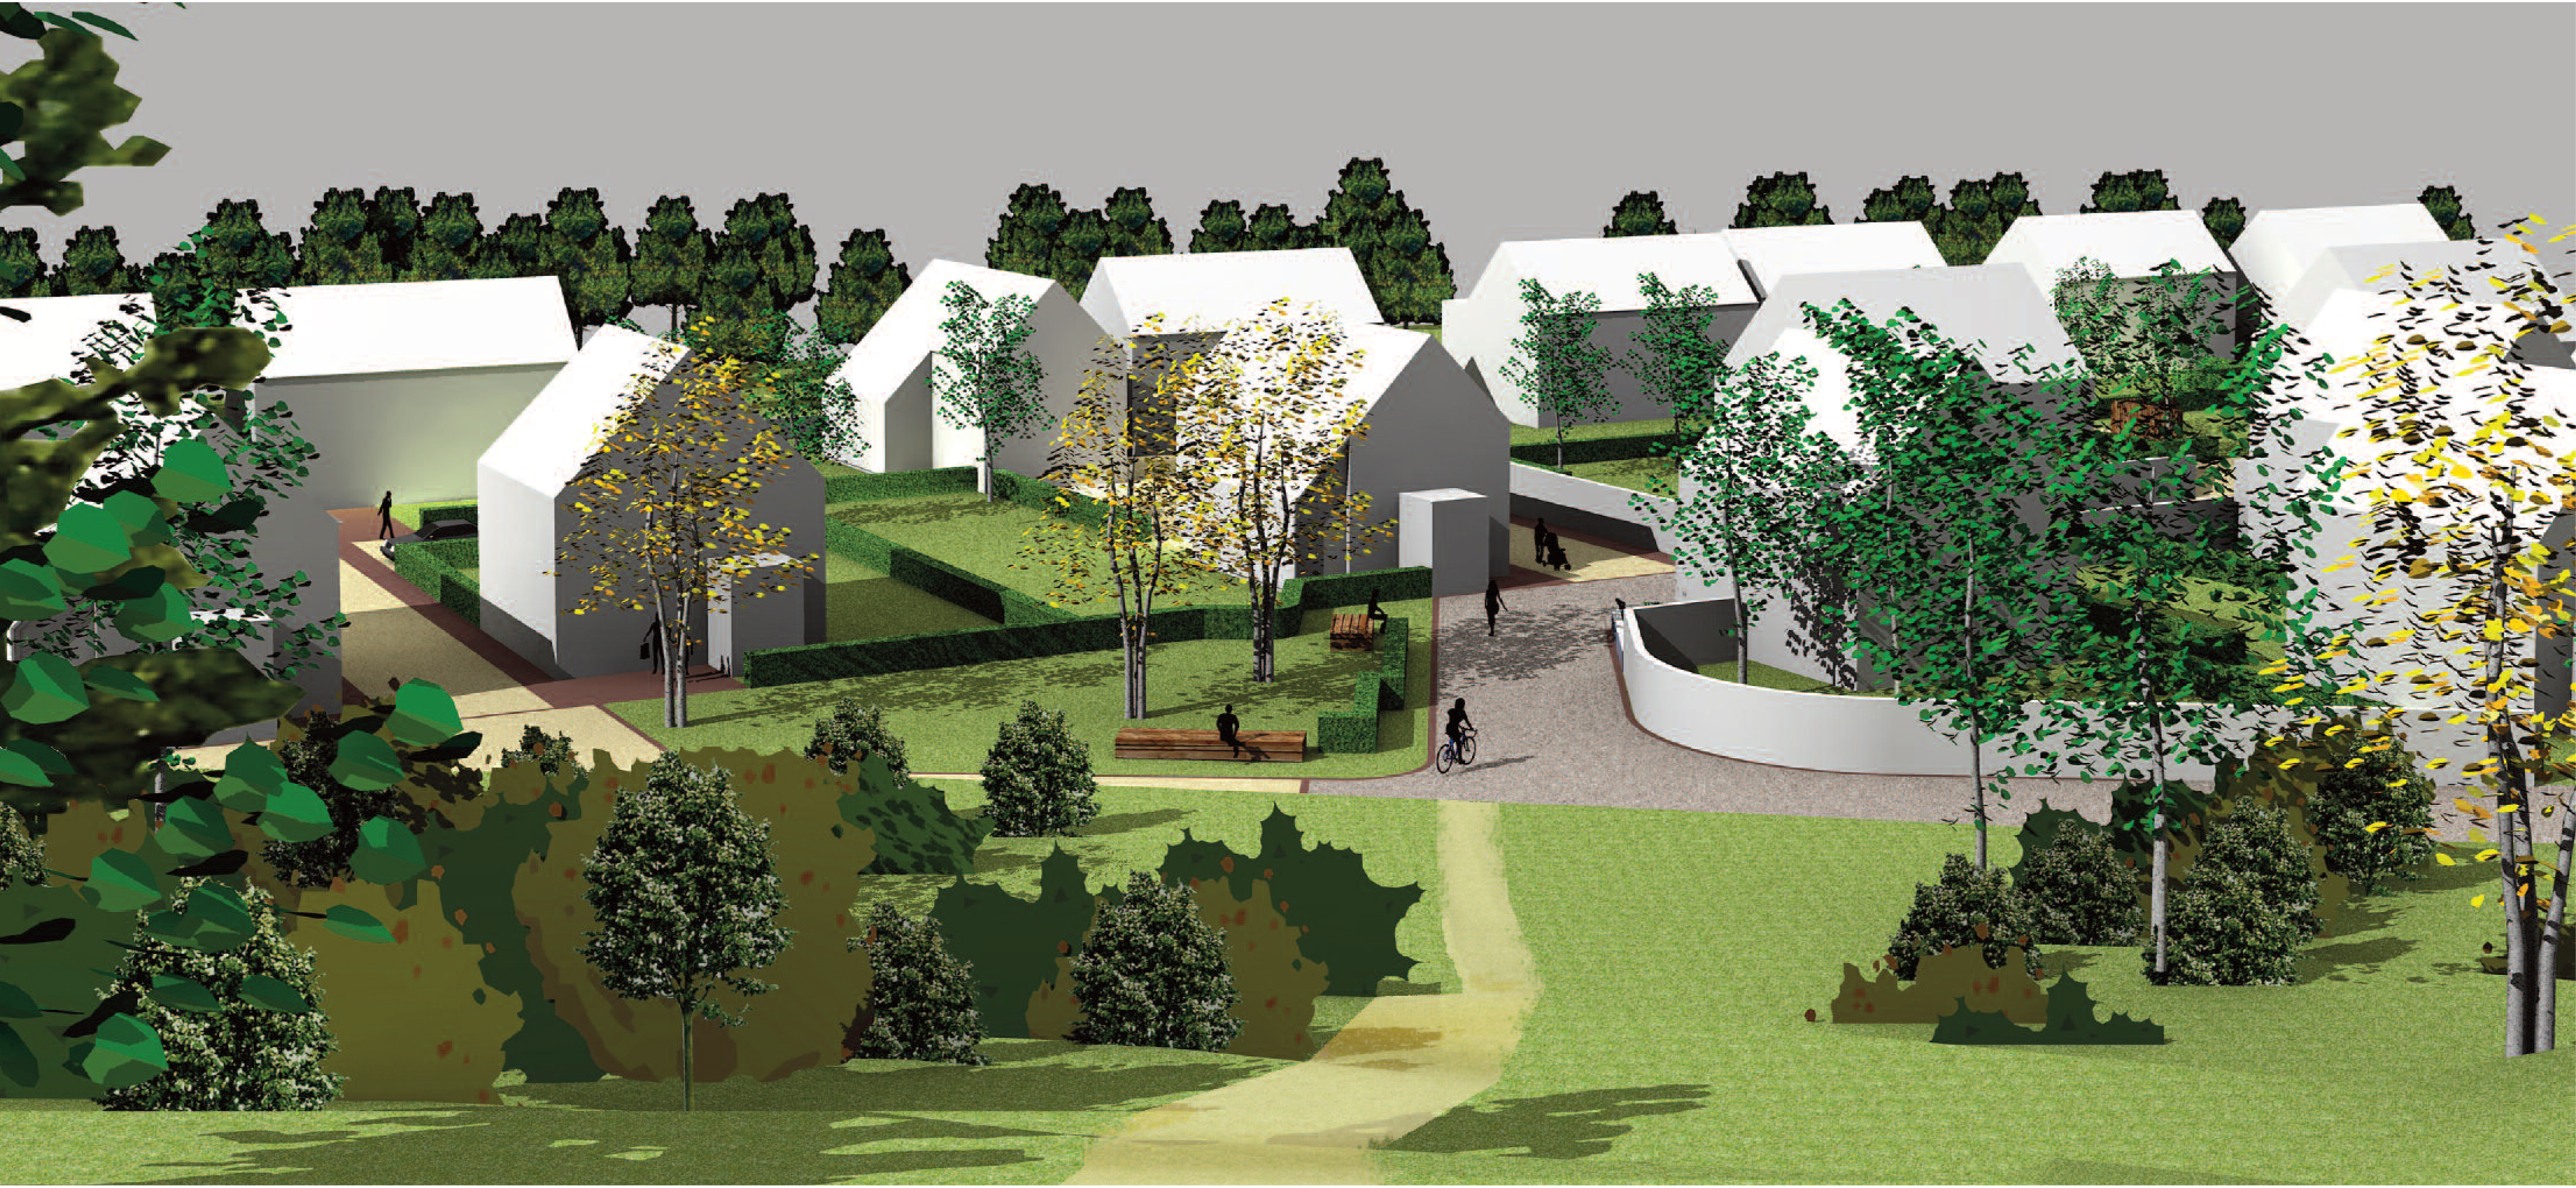 Artist impression of the Ferrylea development in Forres.